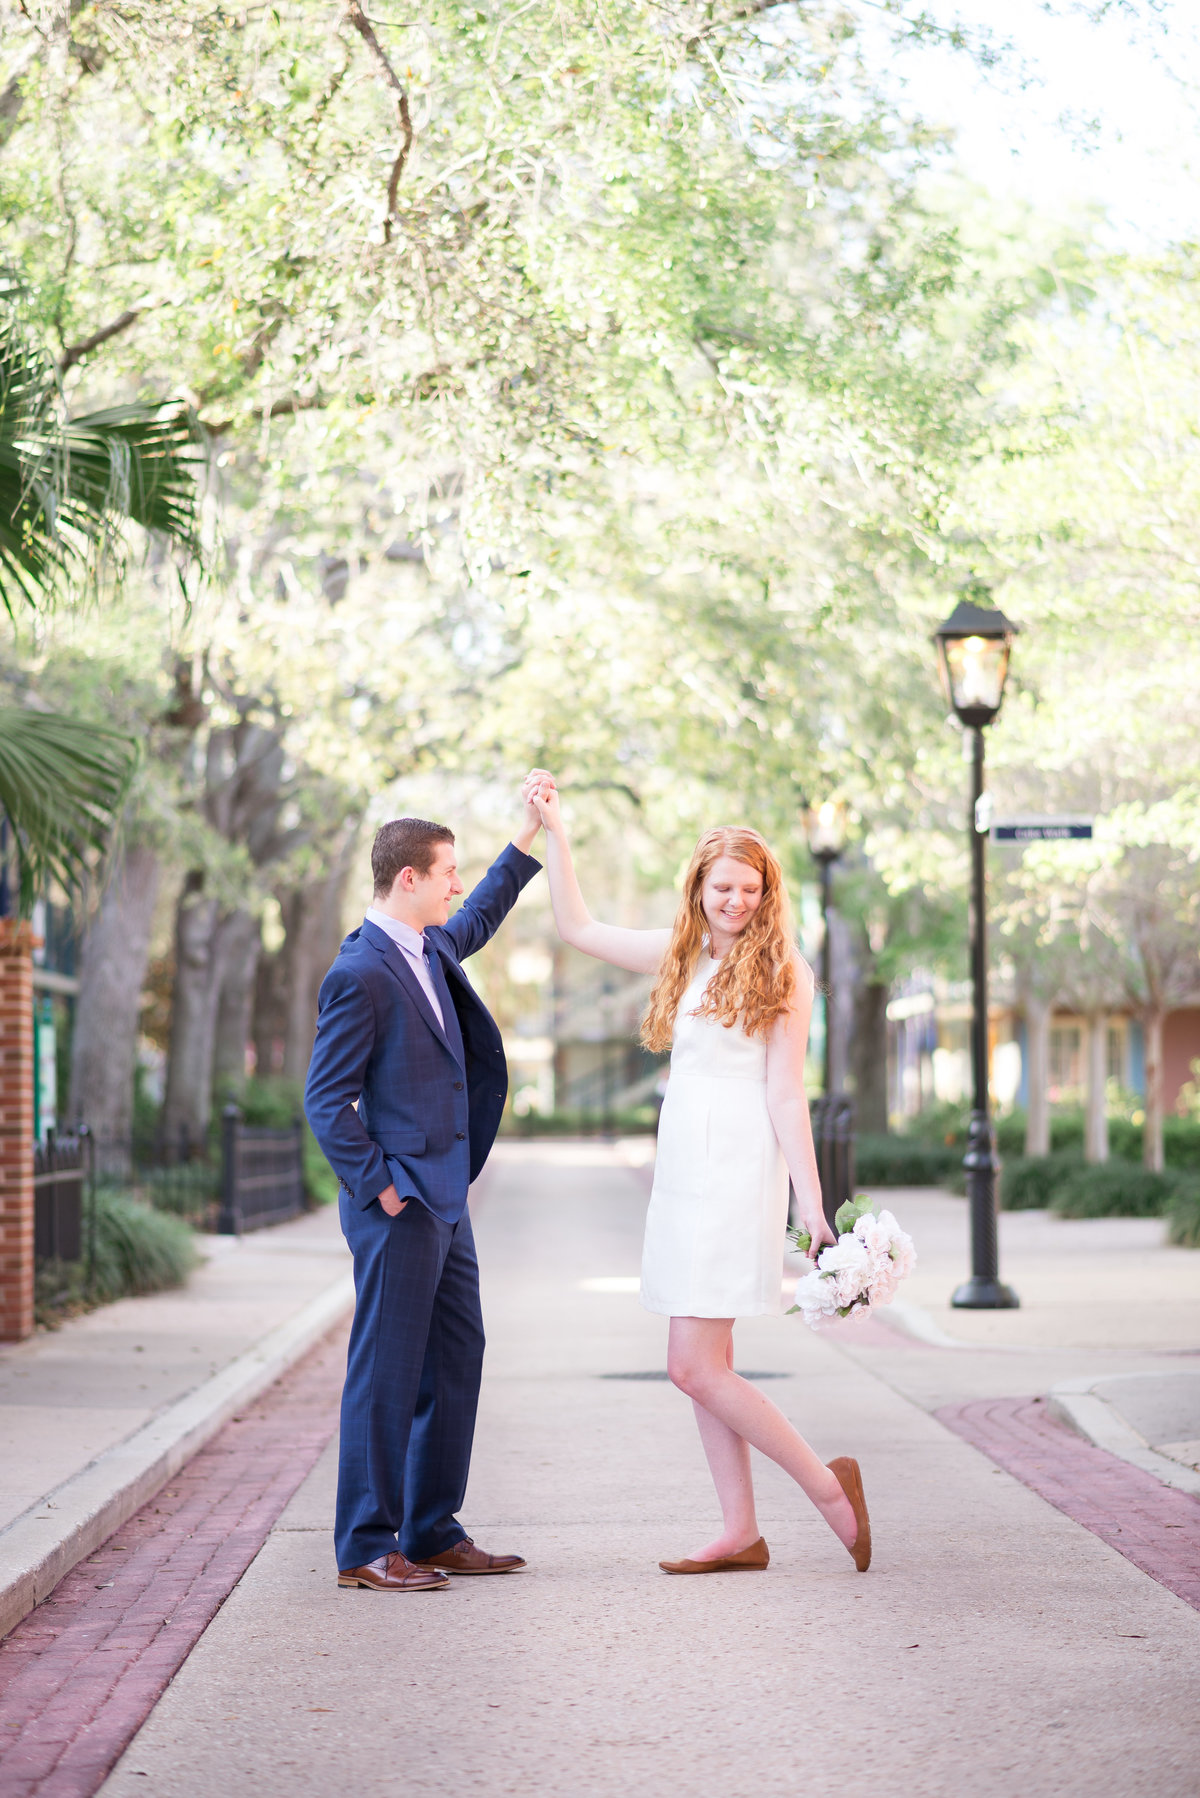 Disney Wedding Photographer, Disney Wedding Photography by Jennifer Pierce